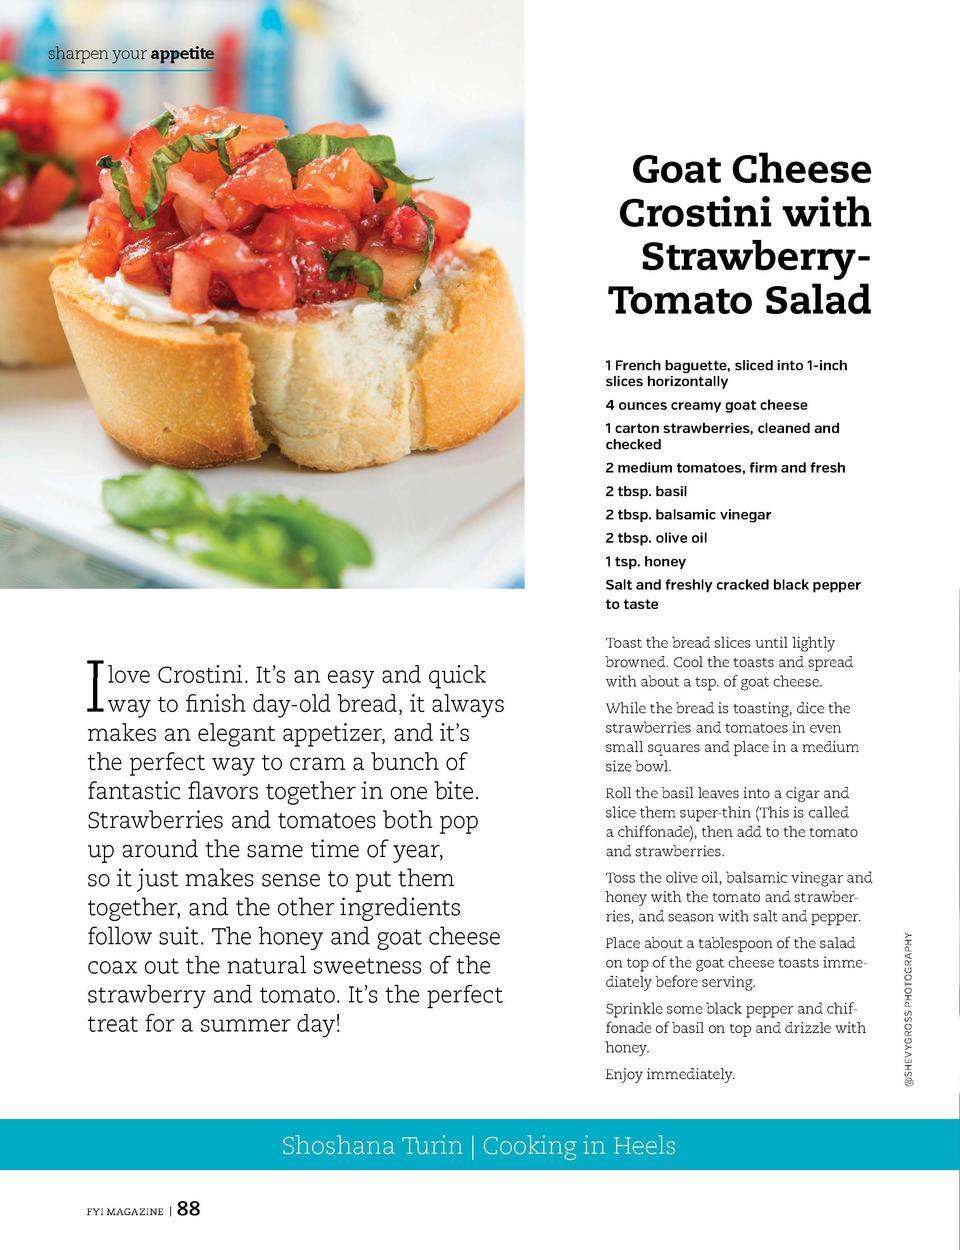 sharpen your appetite  sharpen your appetite  Goat Cheese Crostini with StrawberryTomato Salad  Sweet Hawaiian Chicken Thi...